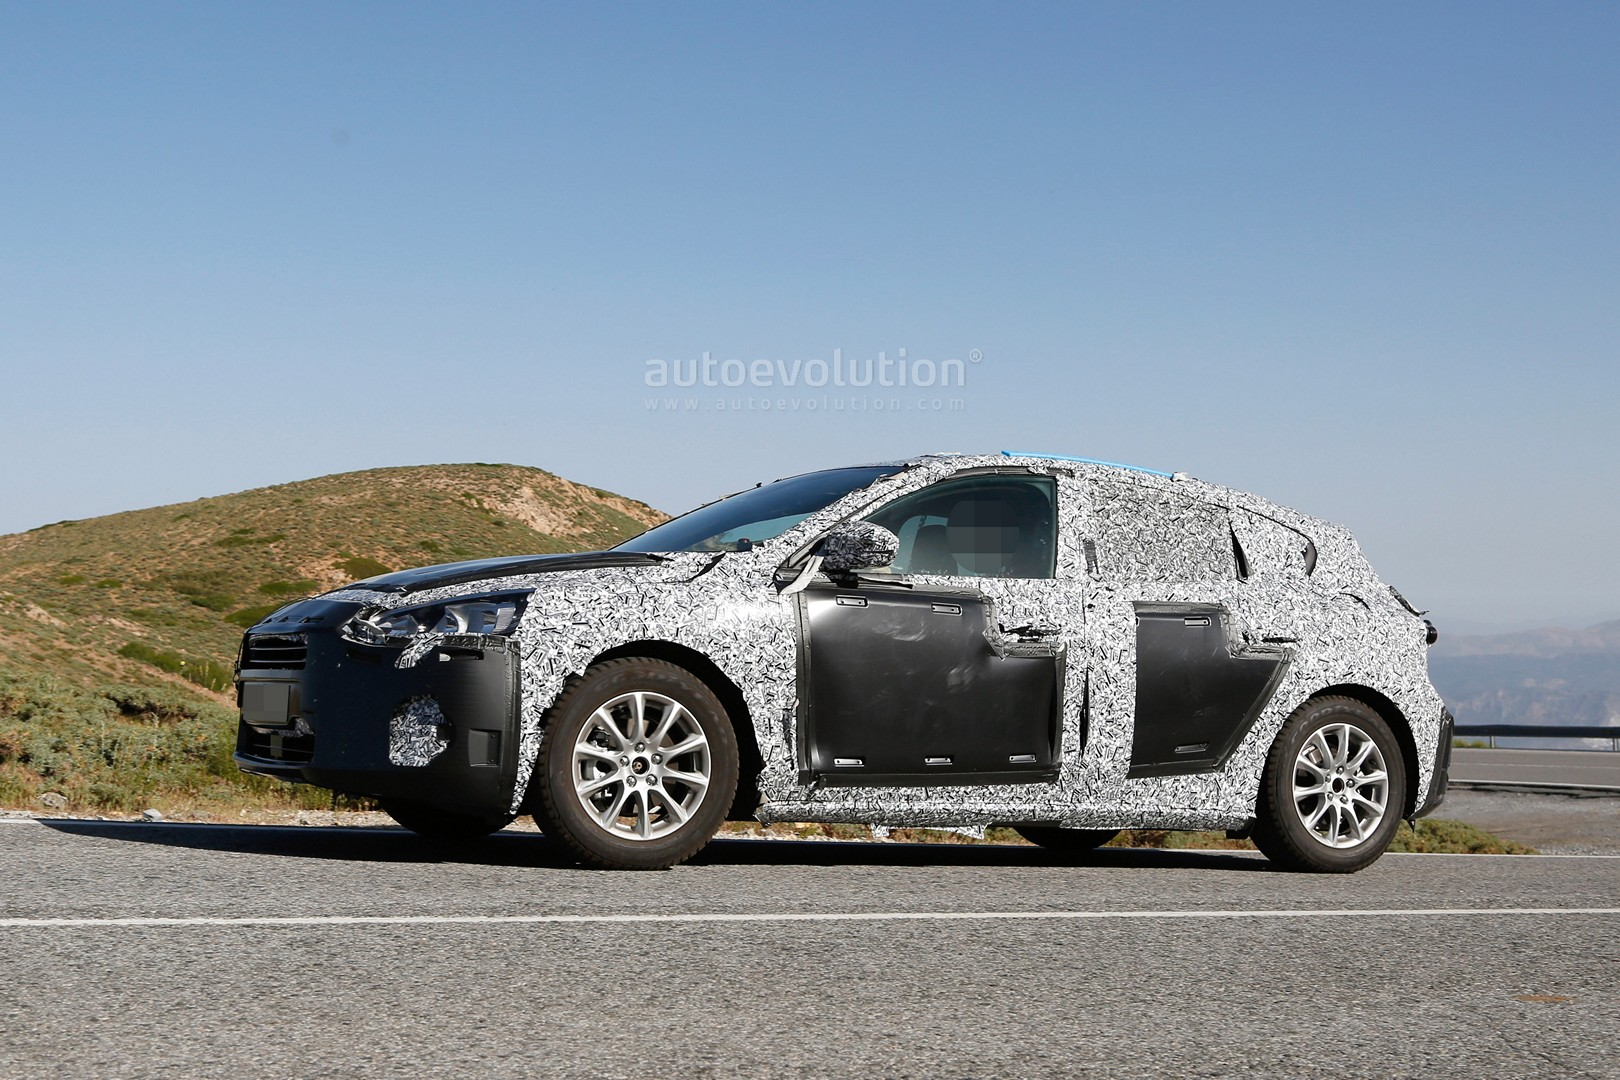 2019 Ford Focus Interior Spied In Detail Has Digital Dash And